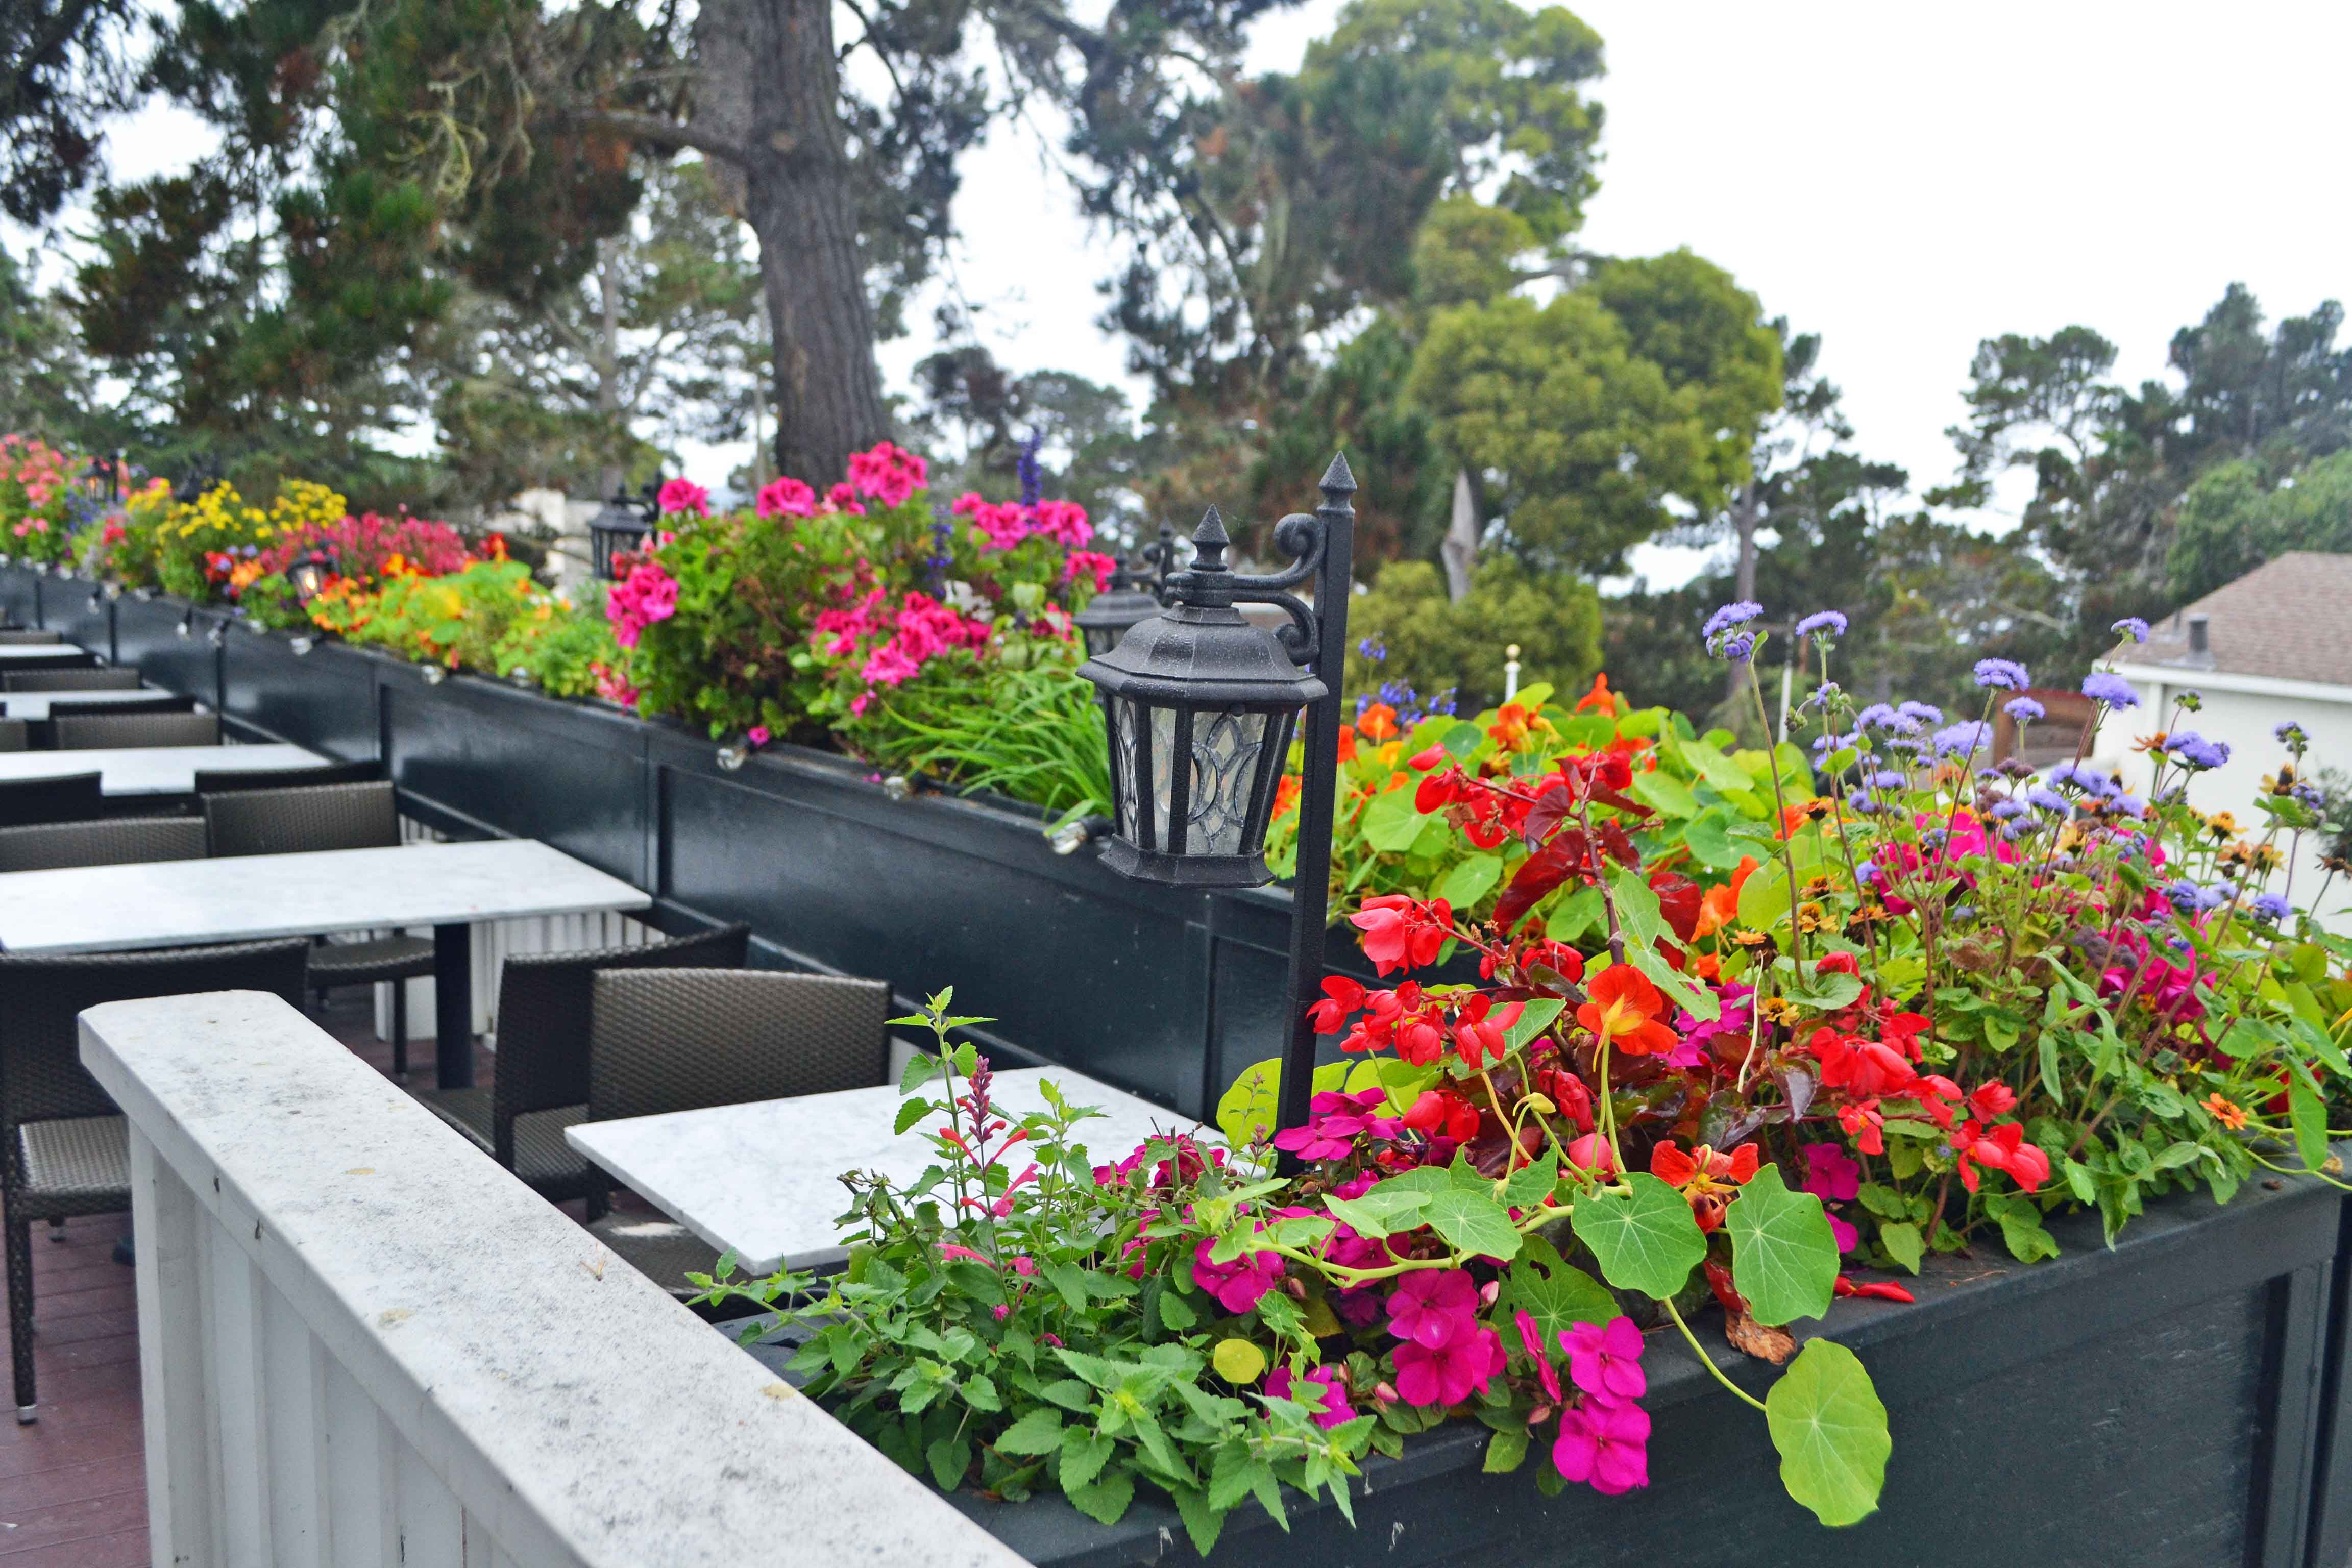 California Pacific Coast Highway 1 Road Trip Guide. Downtown Carmel by the Sea. Il Fornaio Flower Boxes.